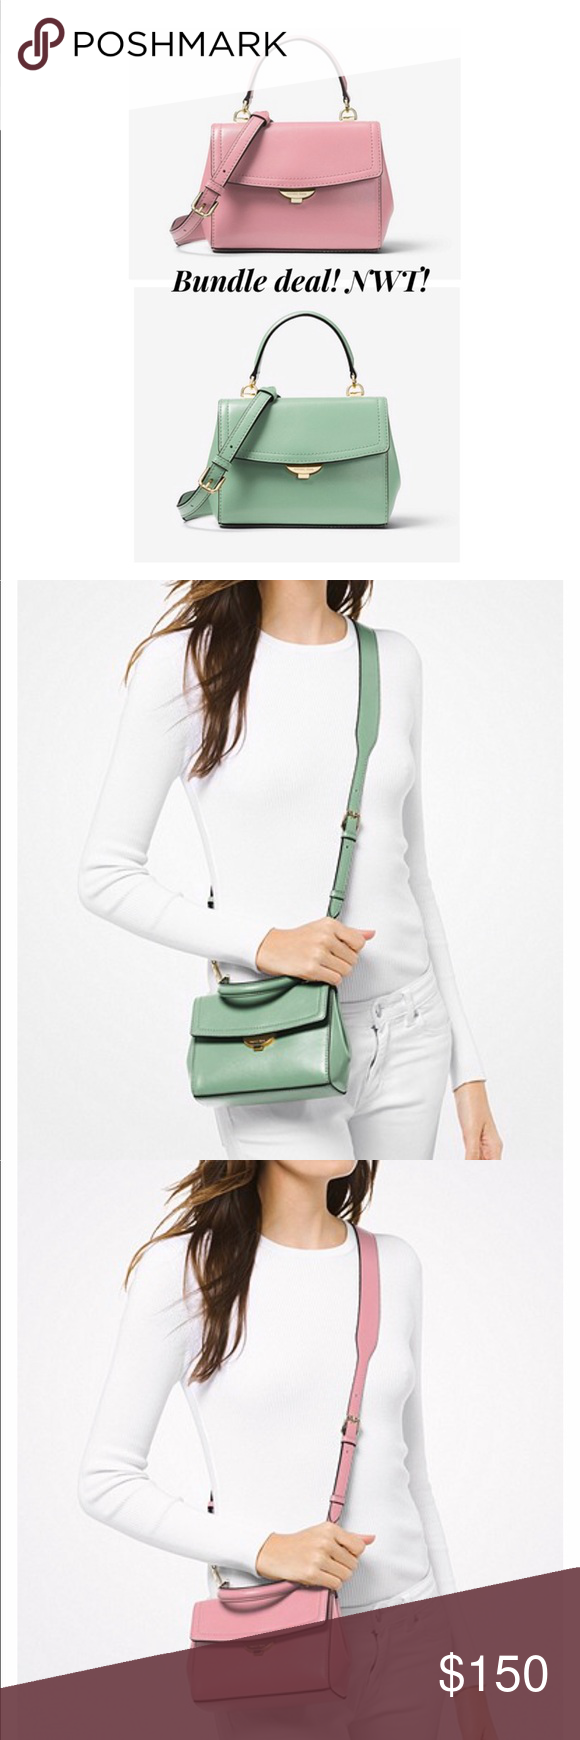 8508fa3e78e9dc Two Ava Extra Small Leather Crossbody Purses Currently $105 each online,  exclusively on michaelkors.